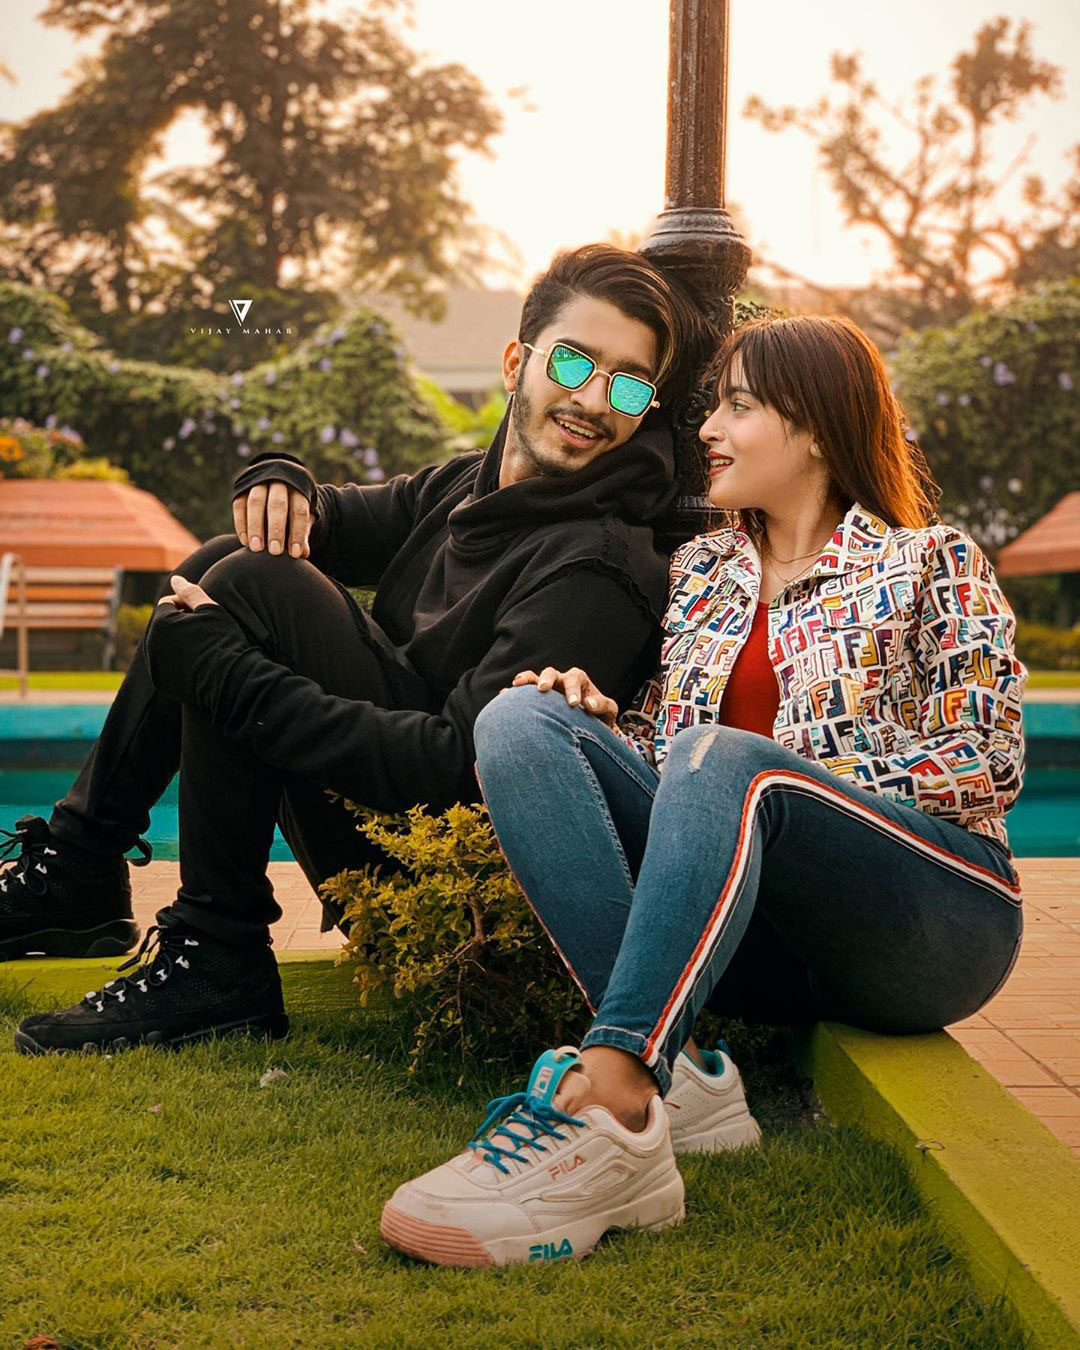 Cute Couple Images wallpaper photo download